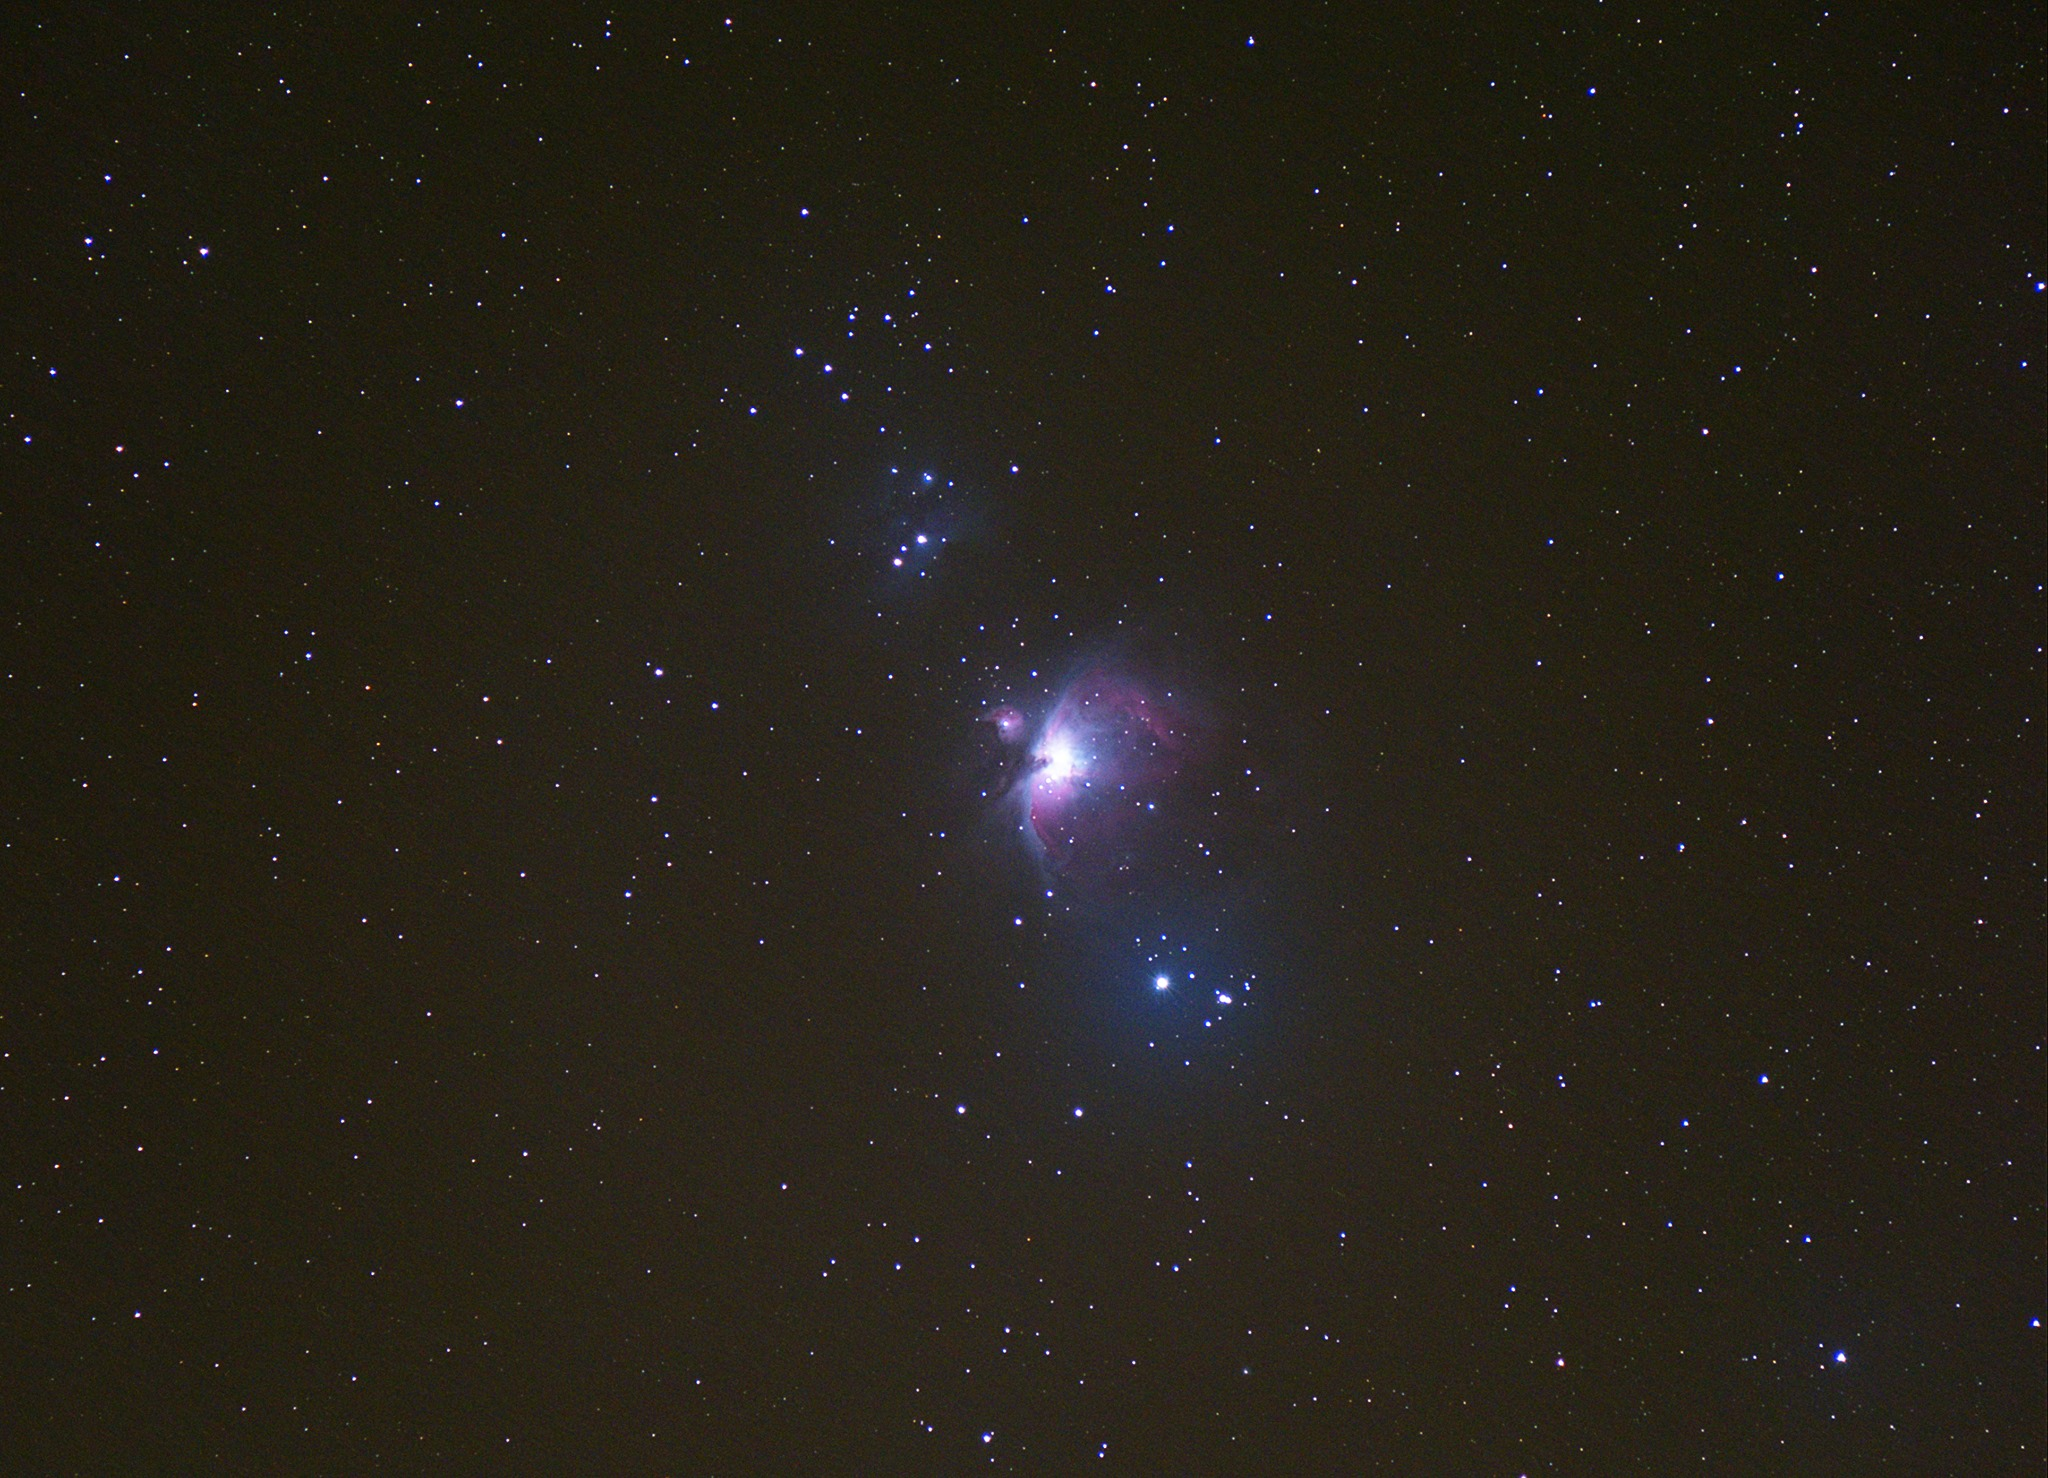 The Orion Nebula was captured by Mark Coull a few nights ago